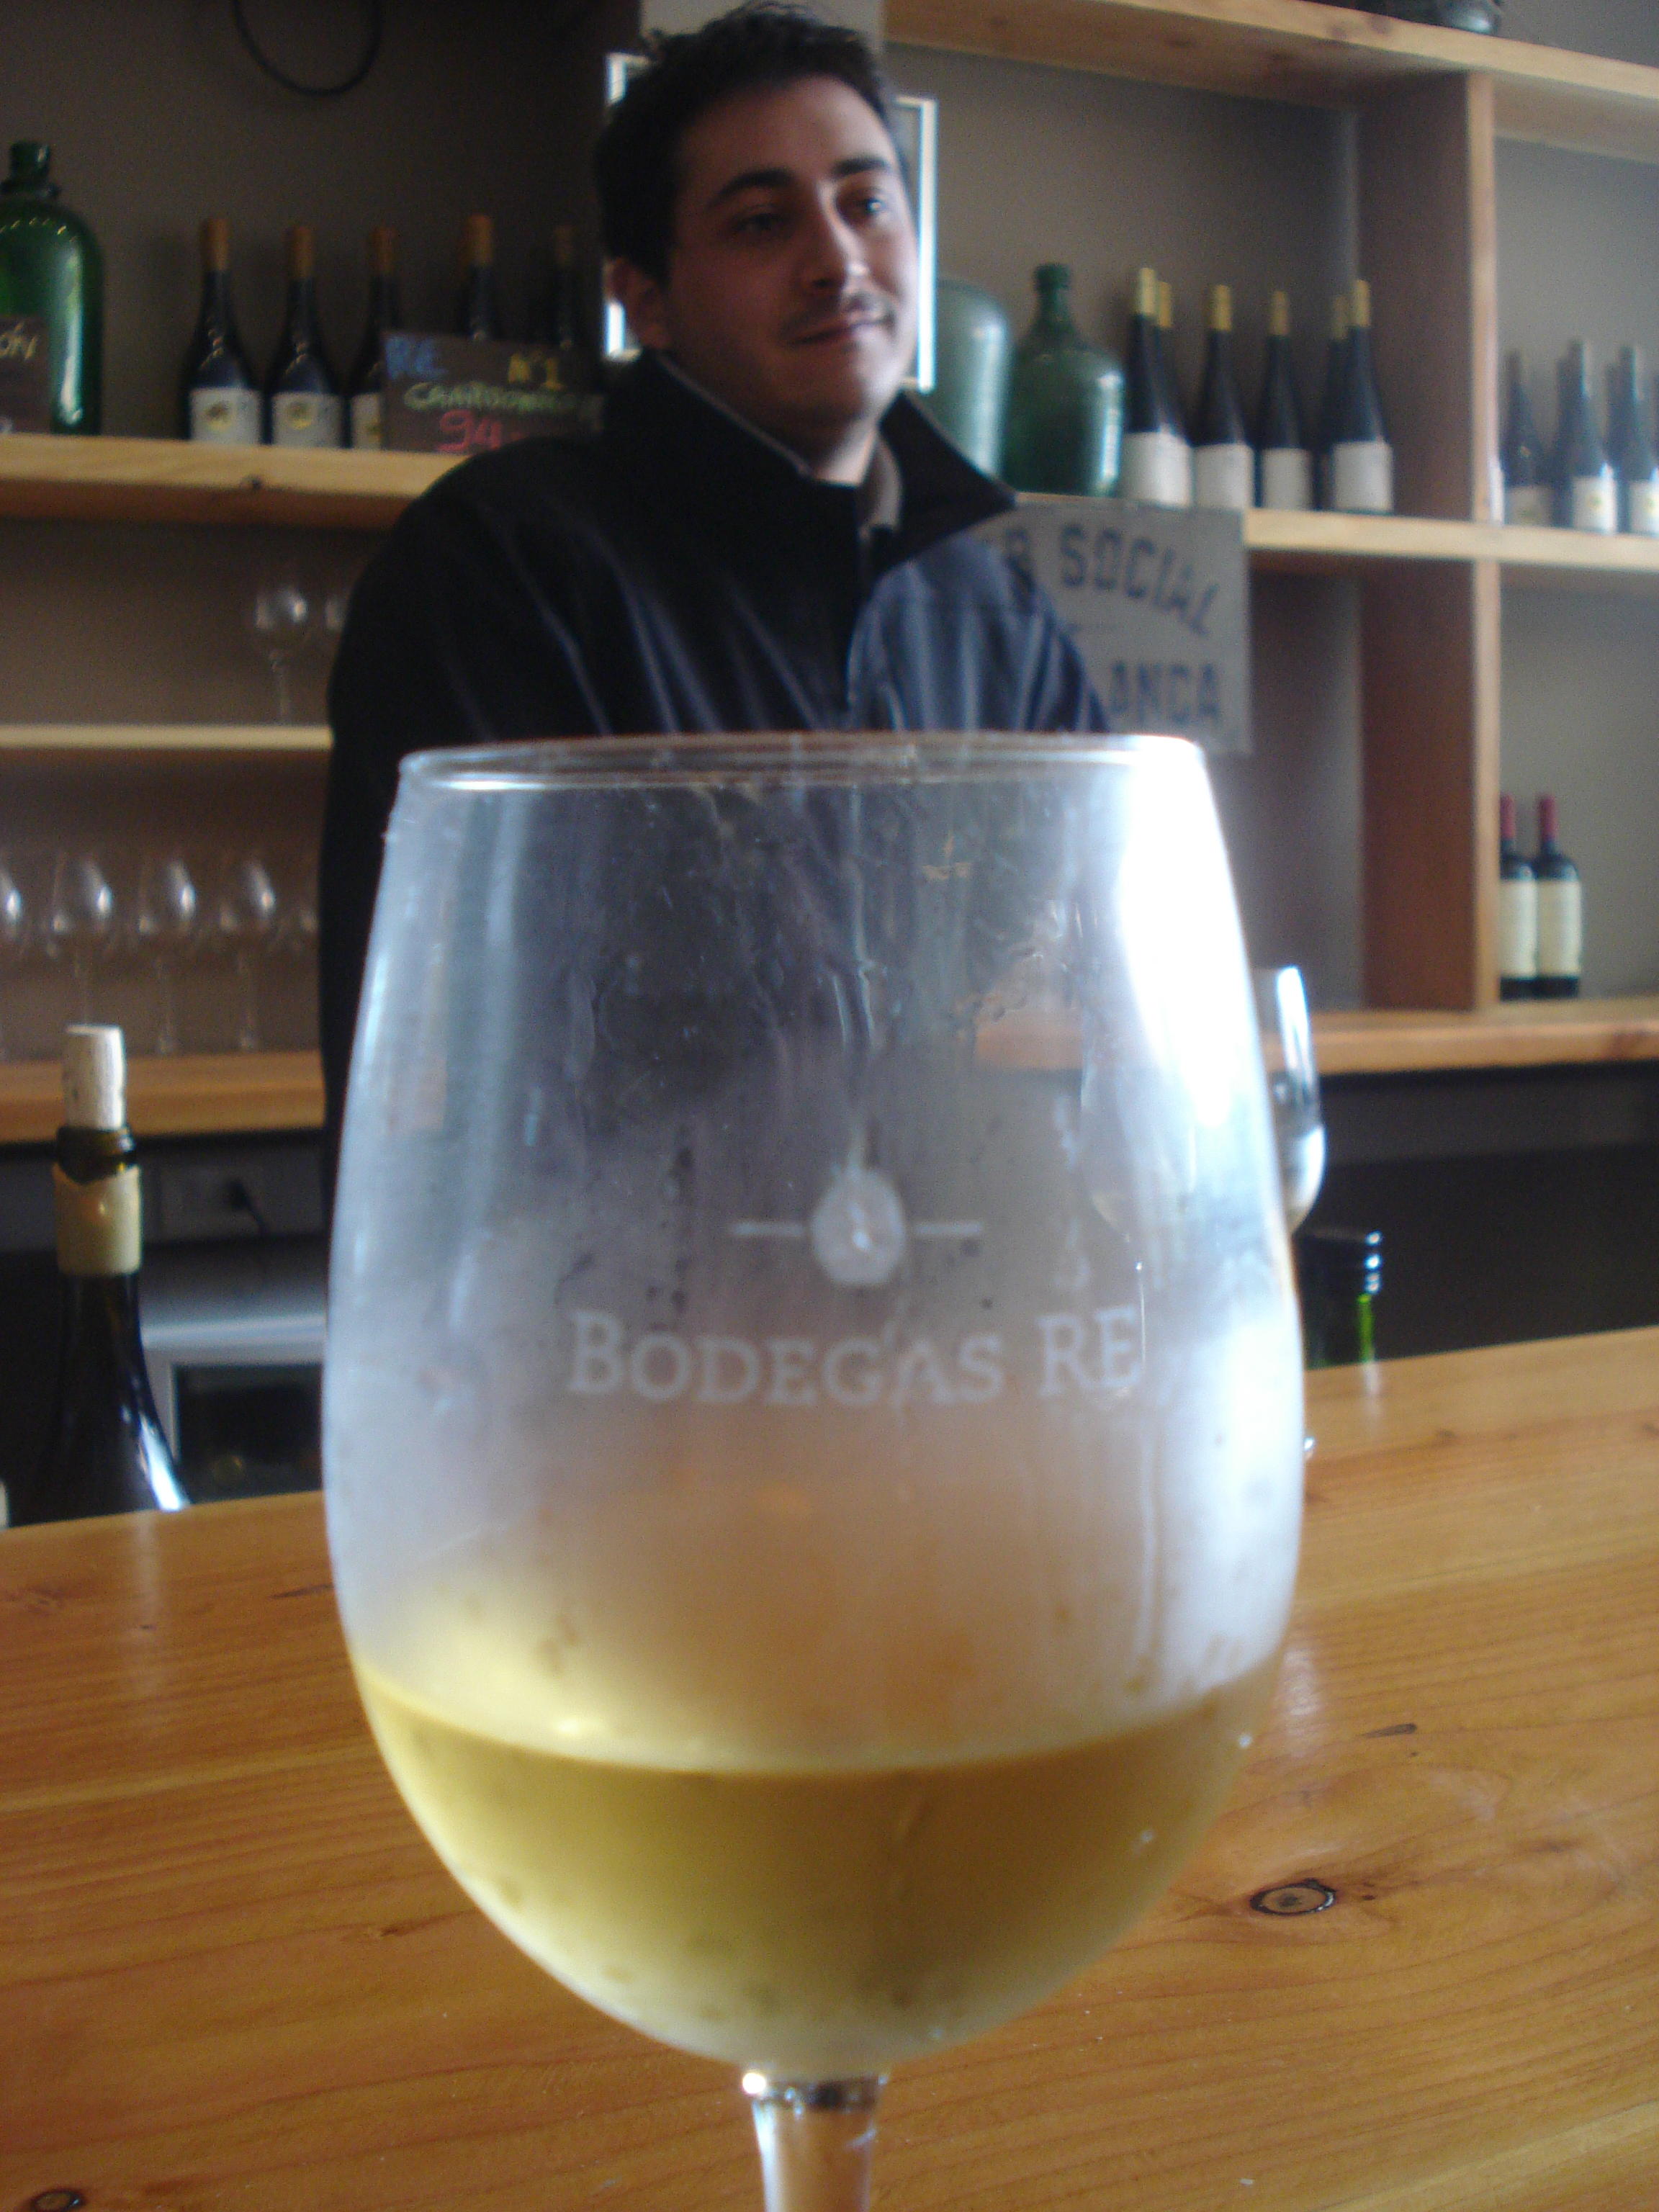 Rodrigo Gómez at Bodegas RE with a glass of their white pinot noir.